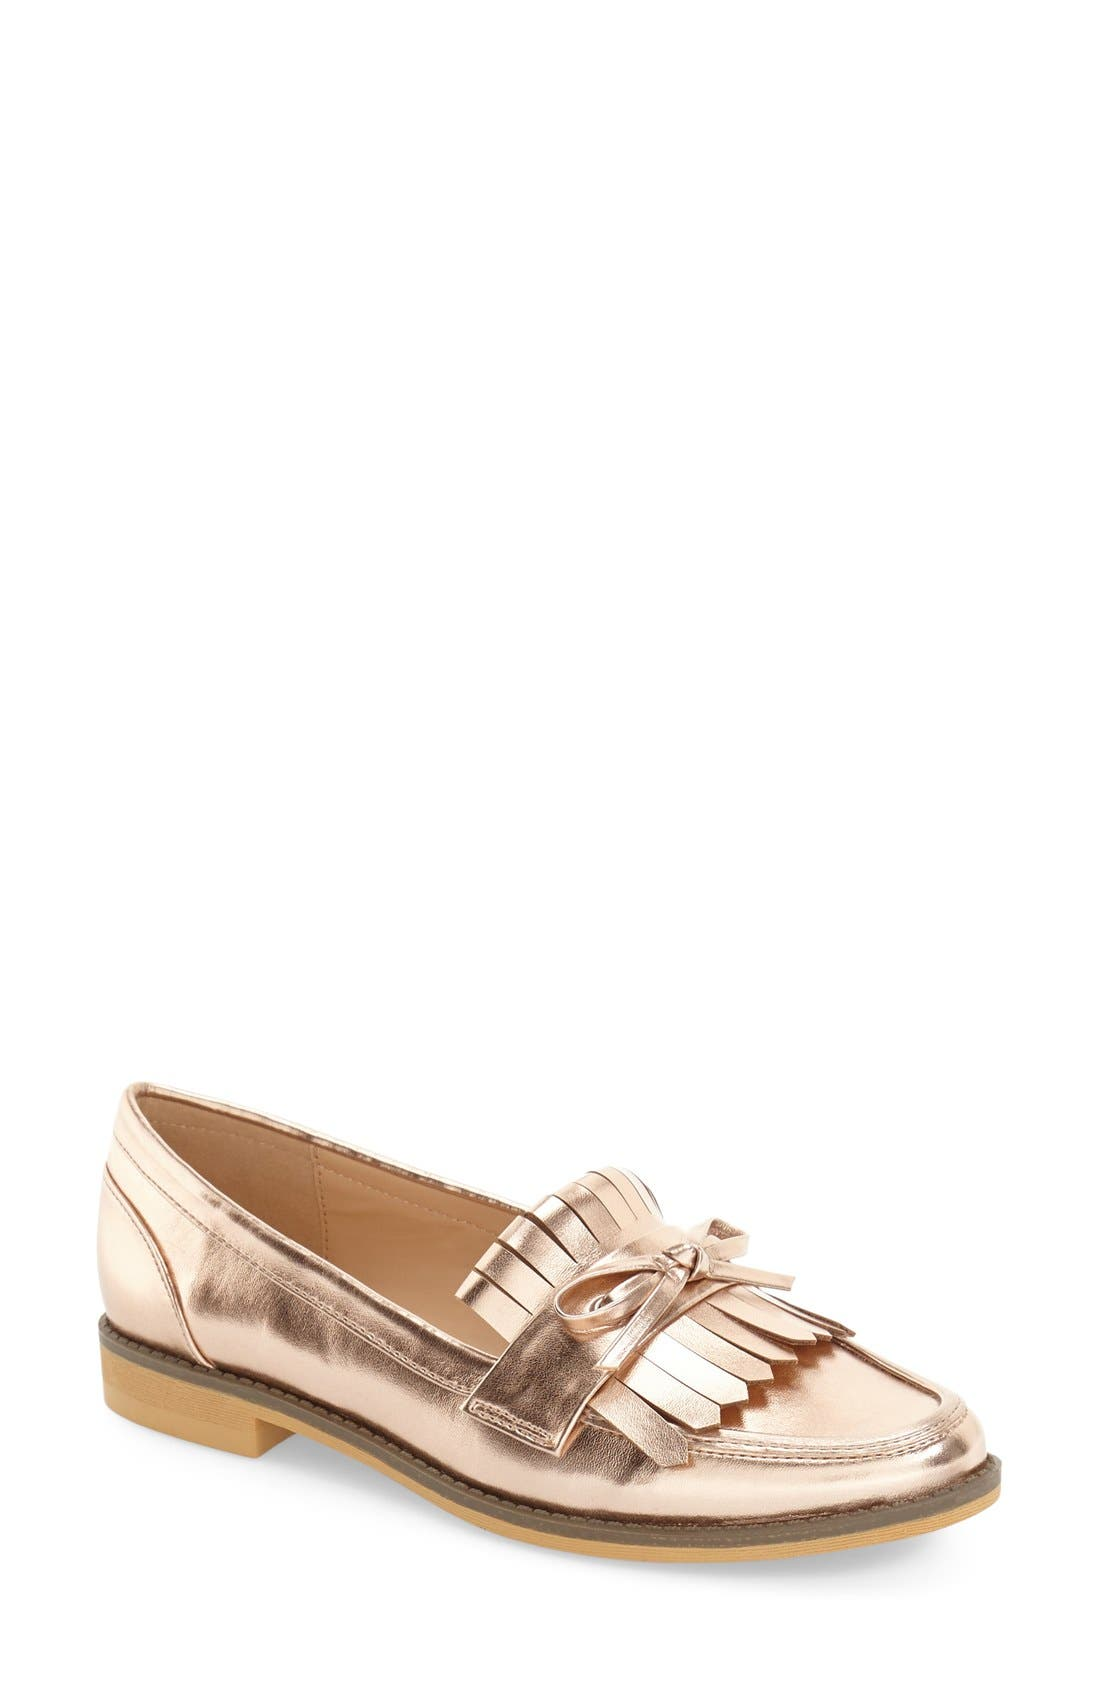 Alternate Image 1 Selected - Sole Society 'Huxley' Loafer (Women)